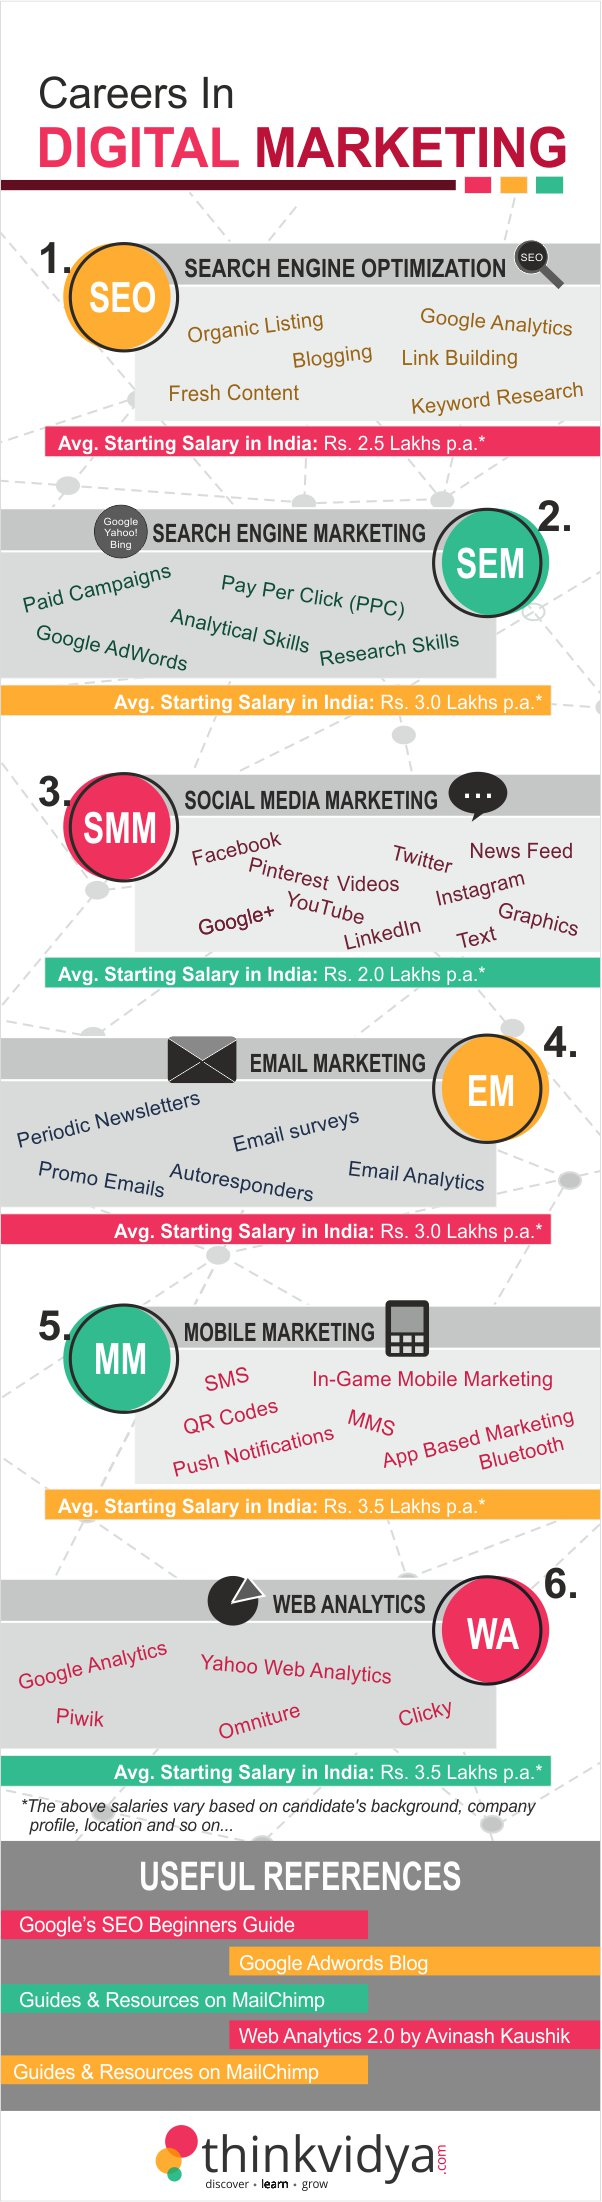 Infographic on Digital Marketing